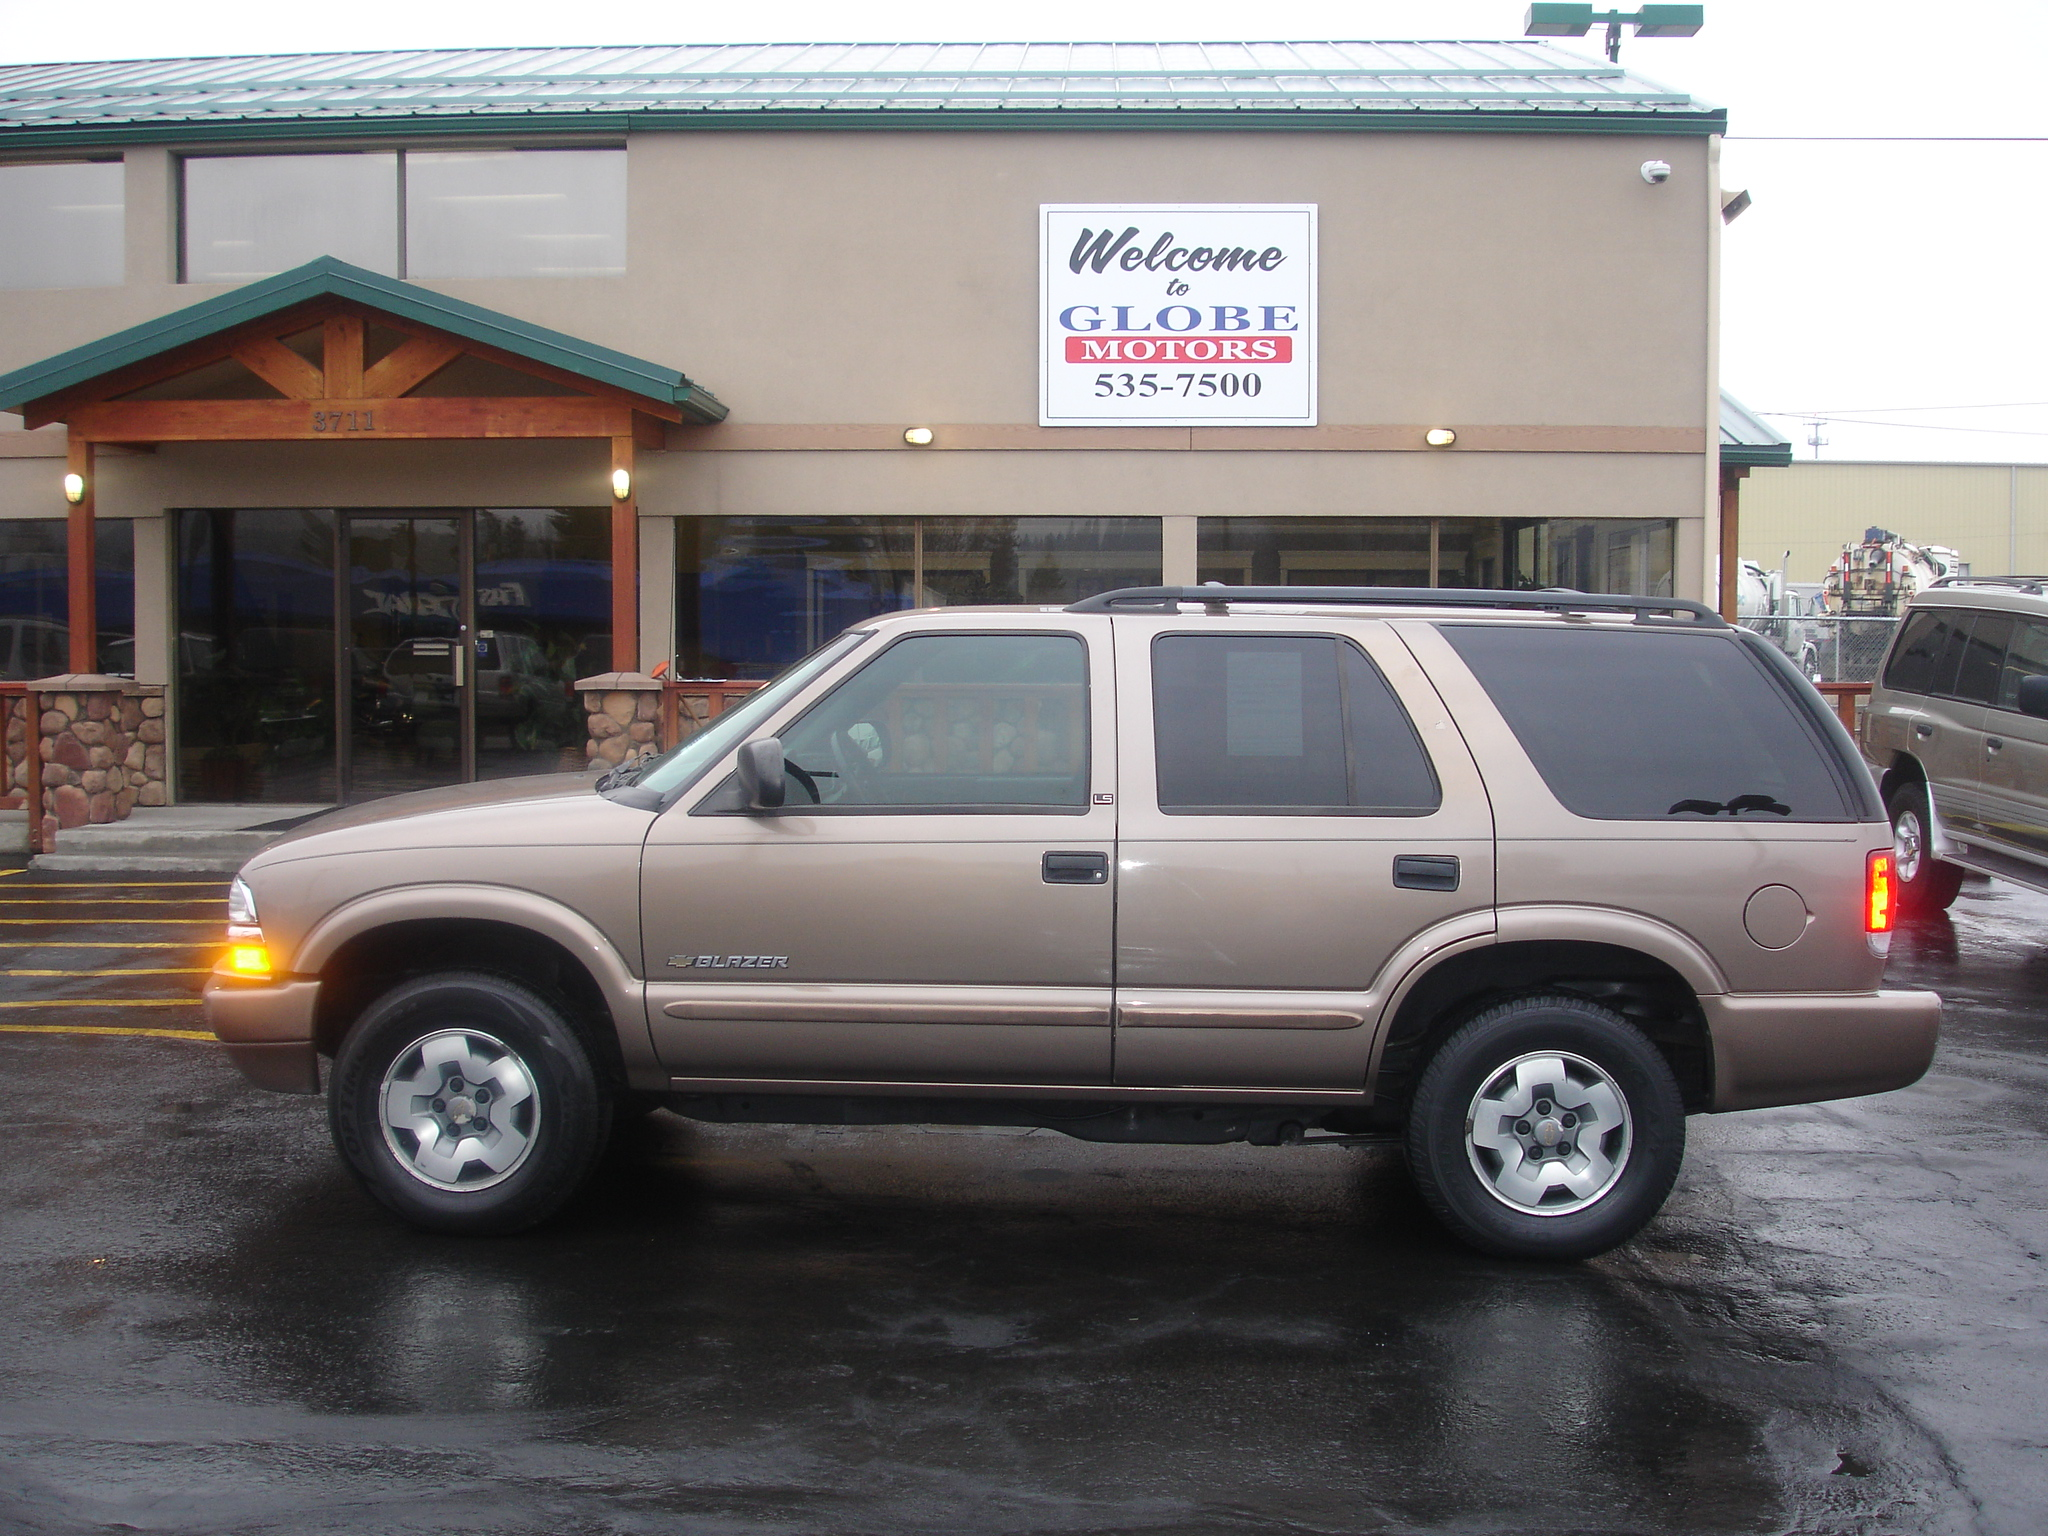 2003 chevrolet blazer photos informations articles bestcarmag com 2003 chevrolet blazer photos